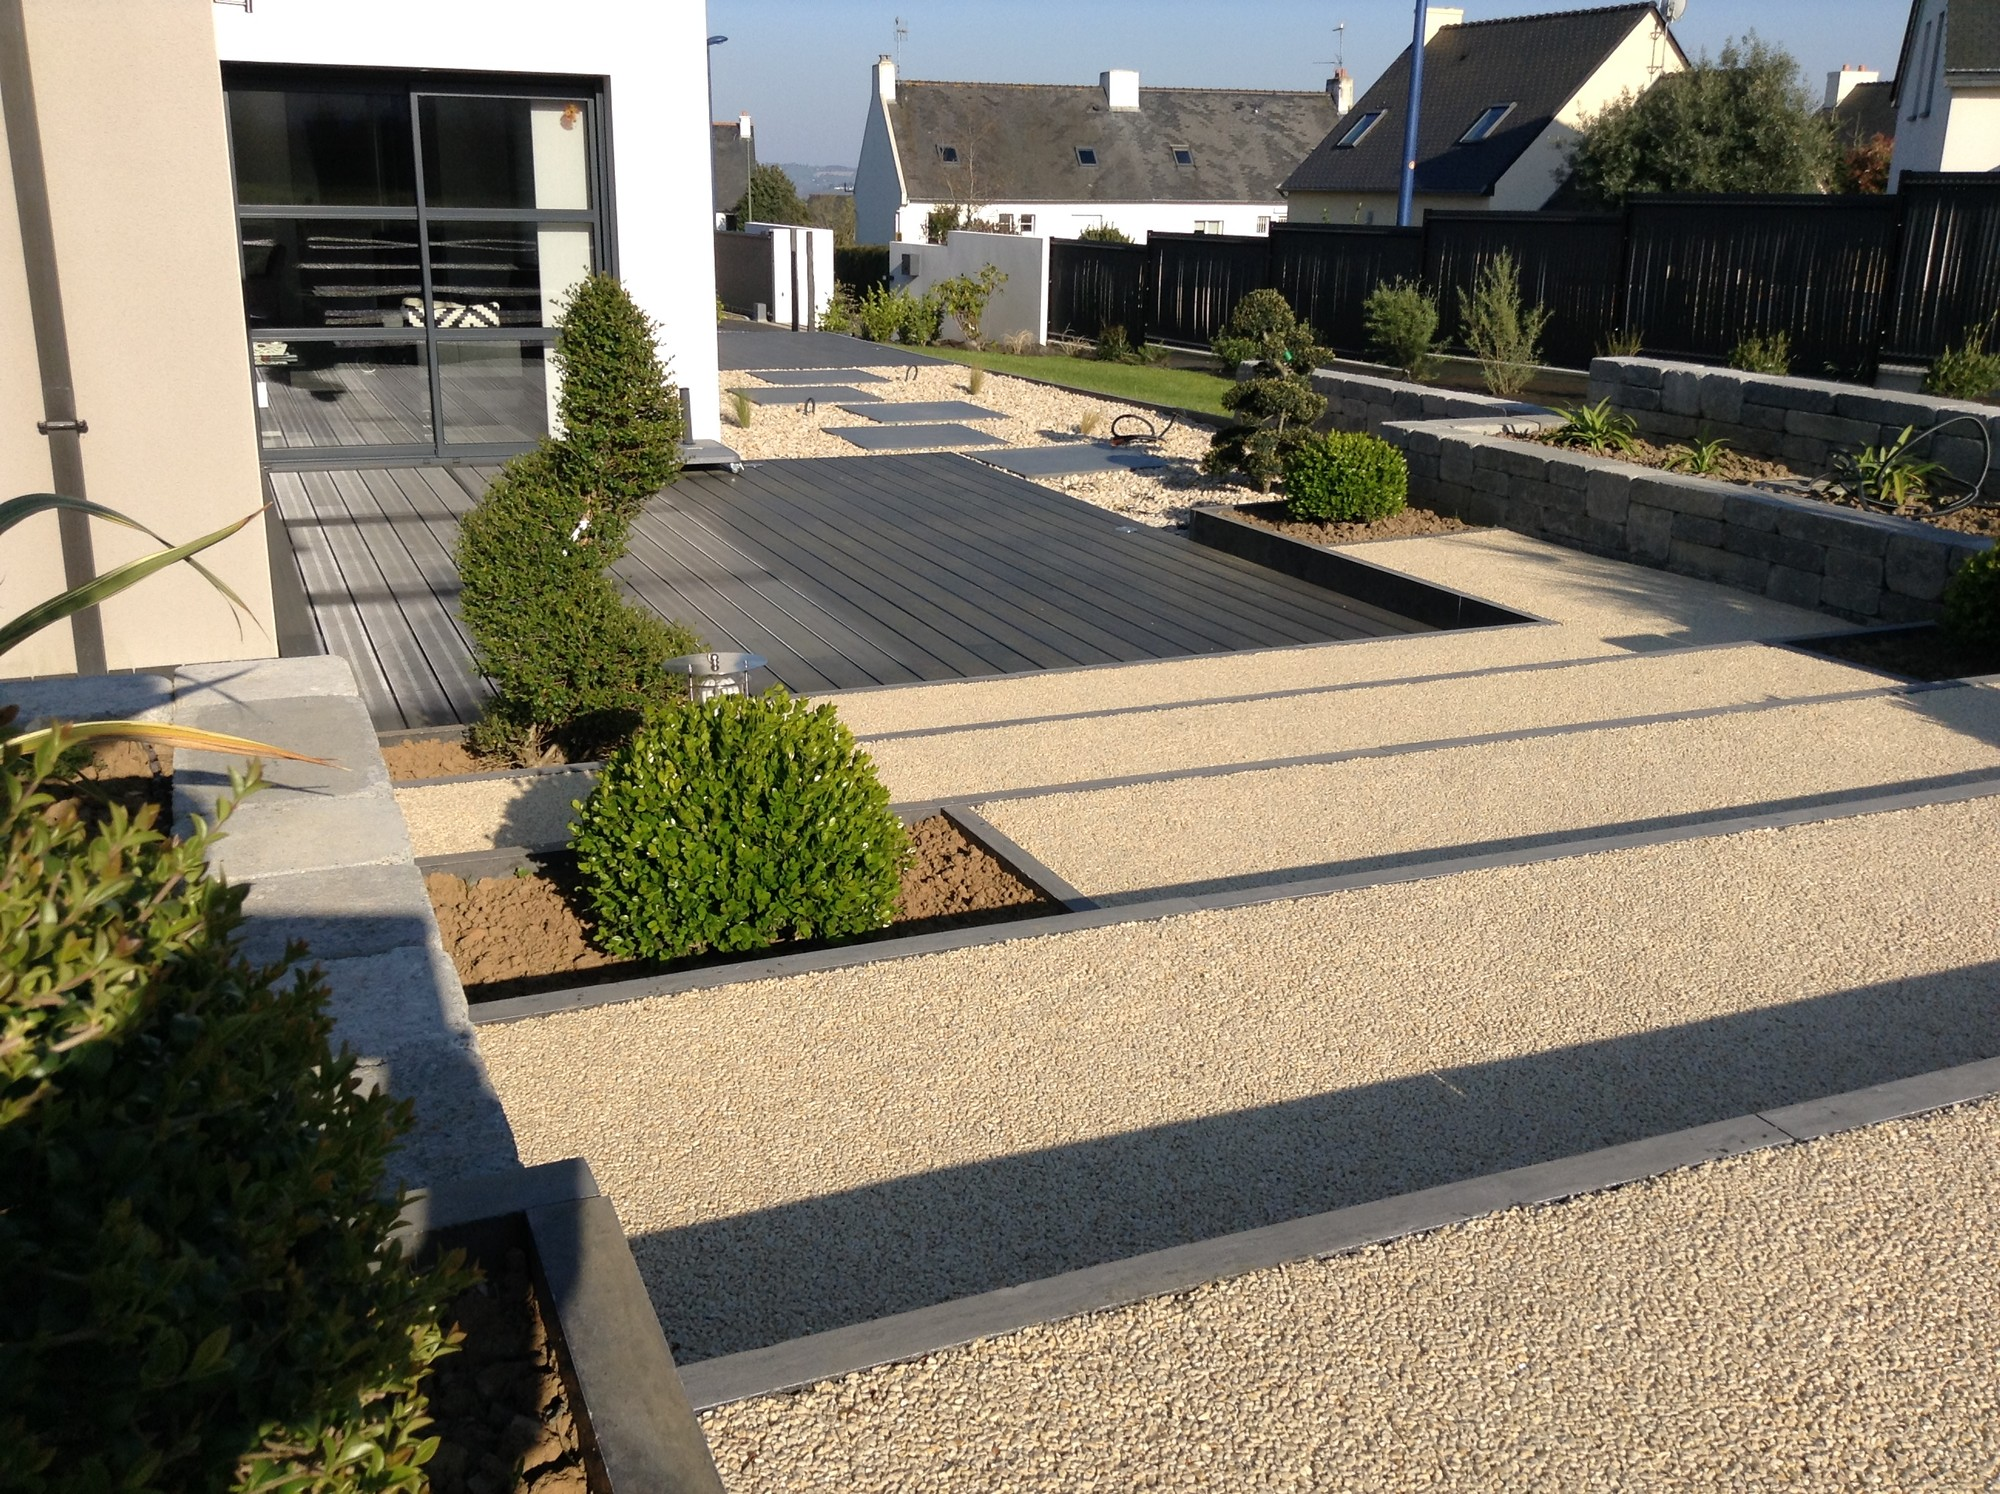 Am nagement du jardin en pente terrasses stationnement for Amenagement terrasse jardin